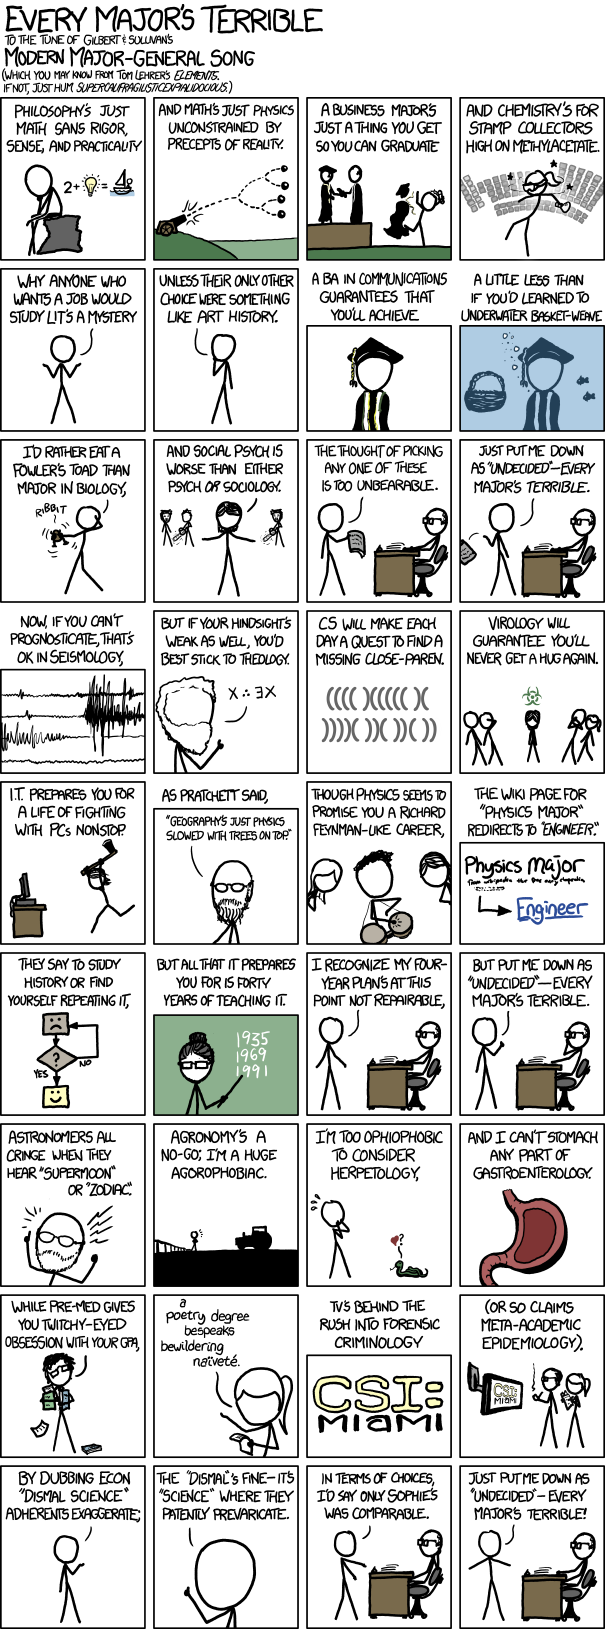 xkcd every major s terrible